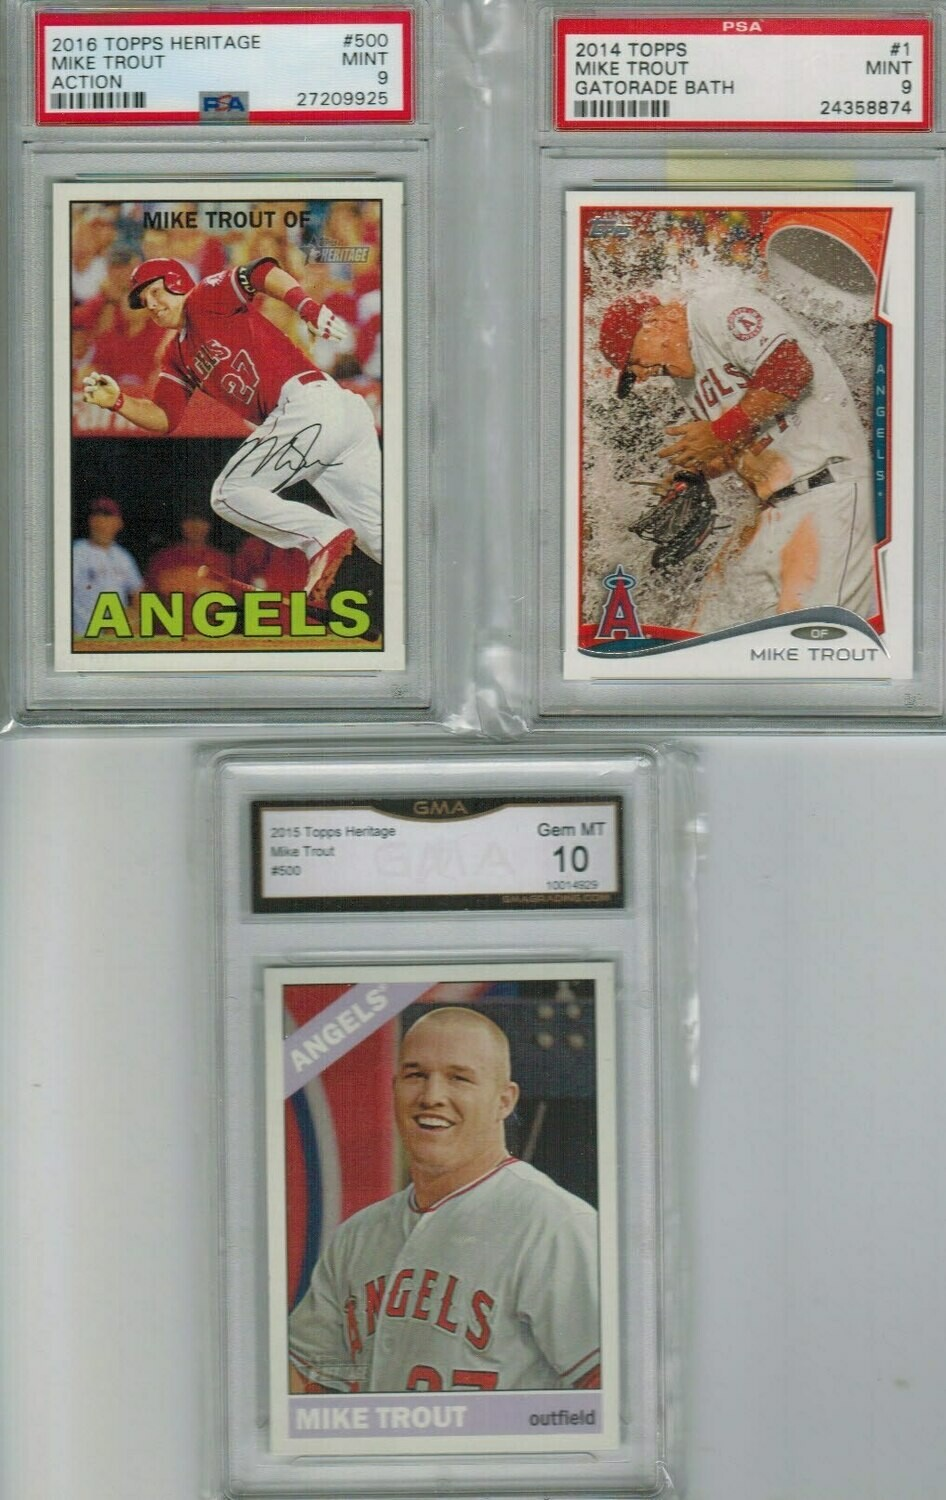 2015 Heritage #500 Mike Trout GMA 10